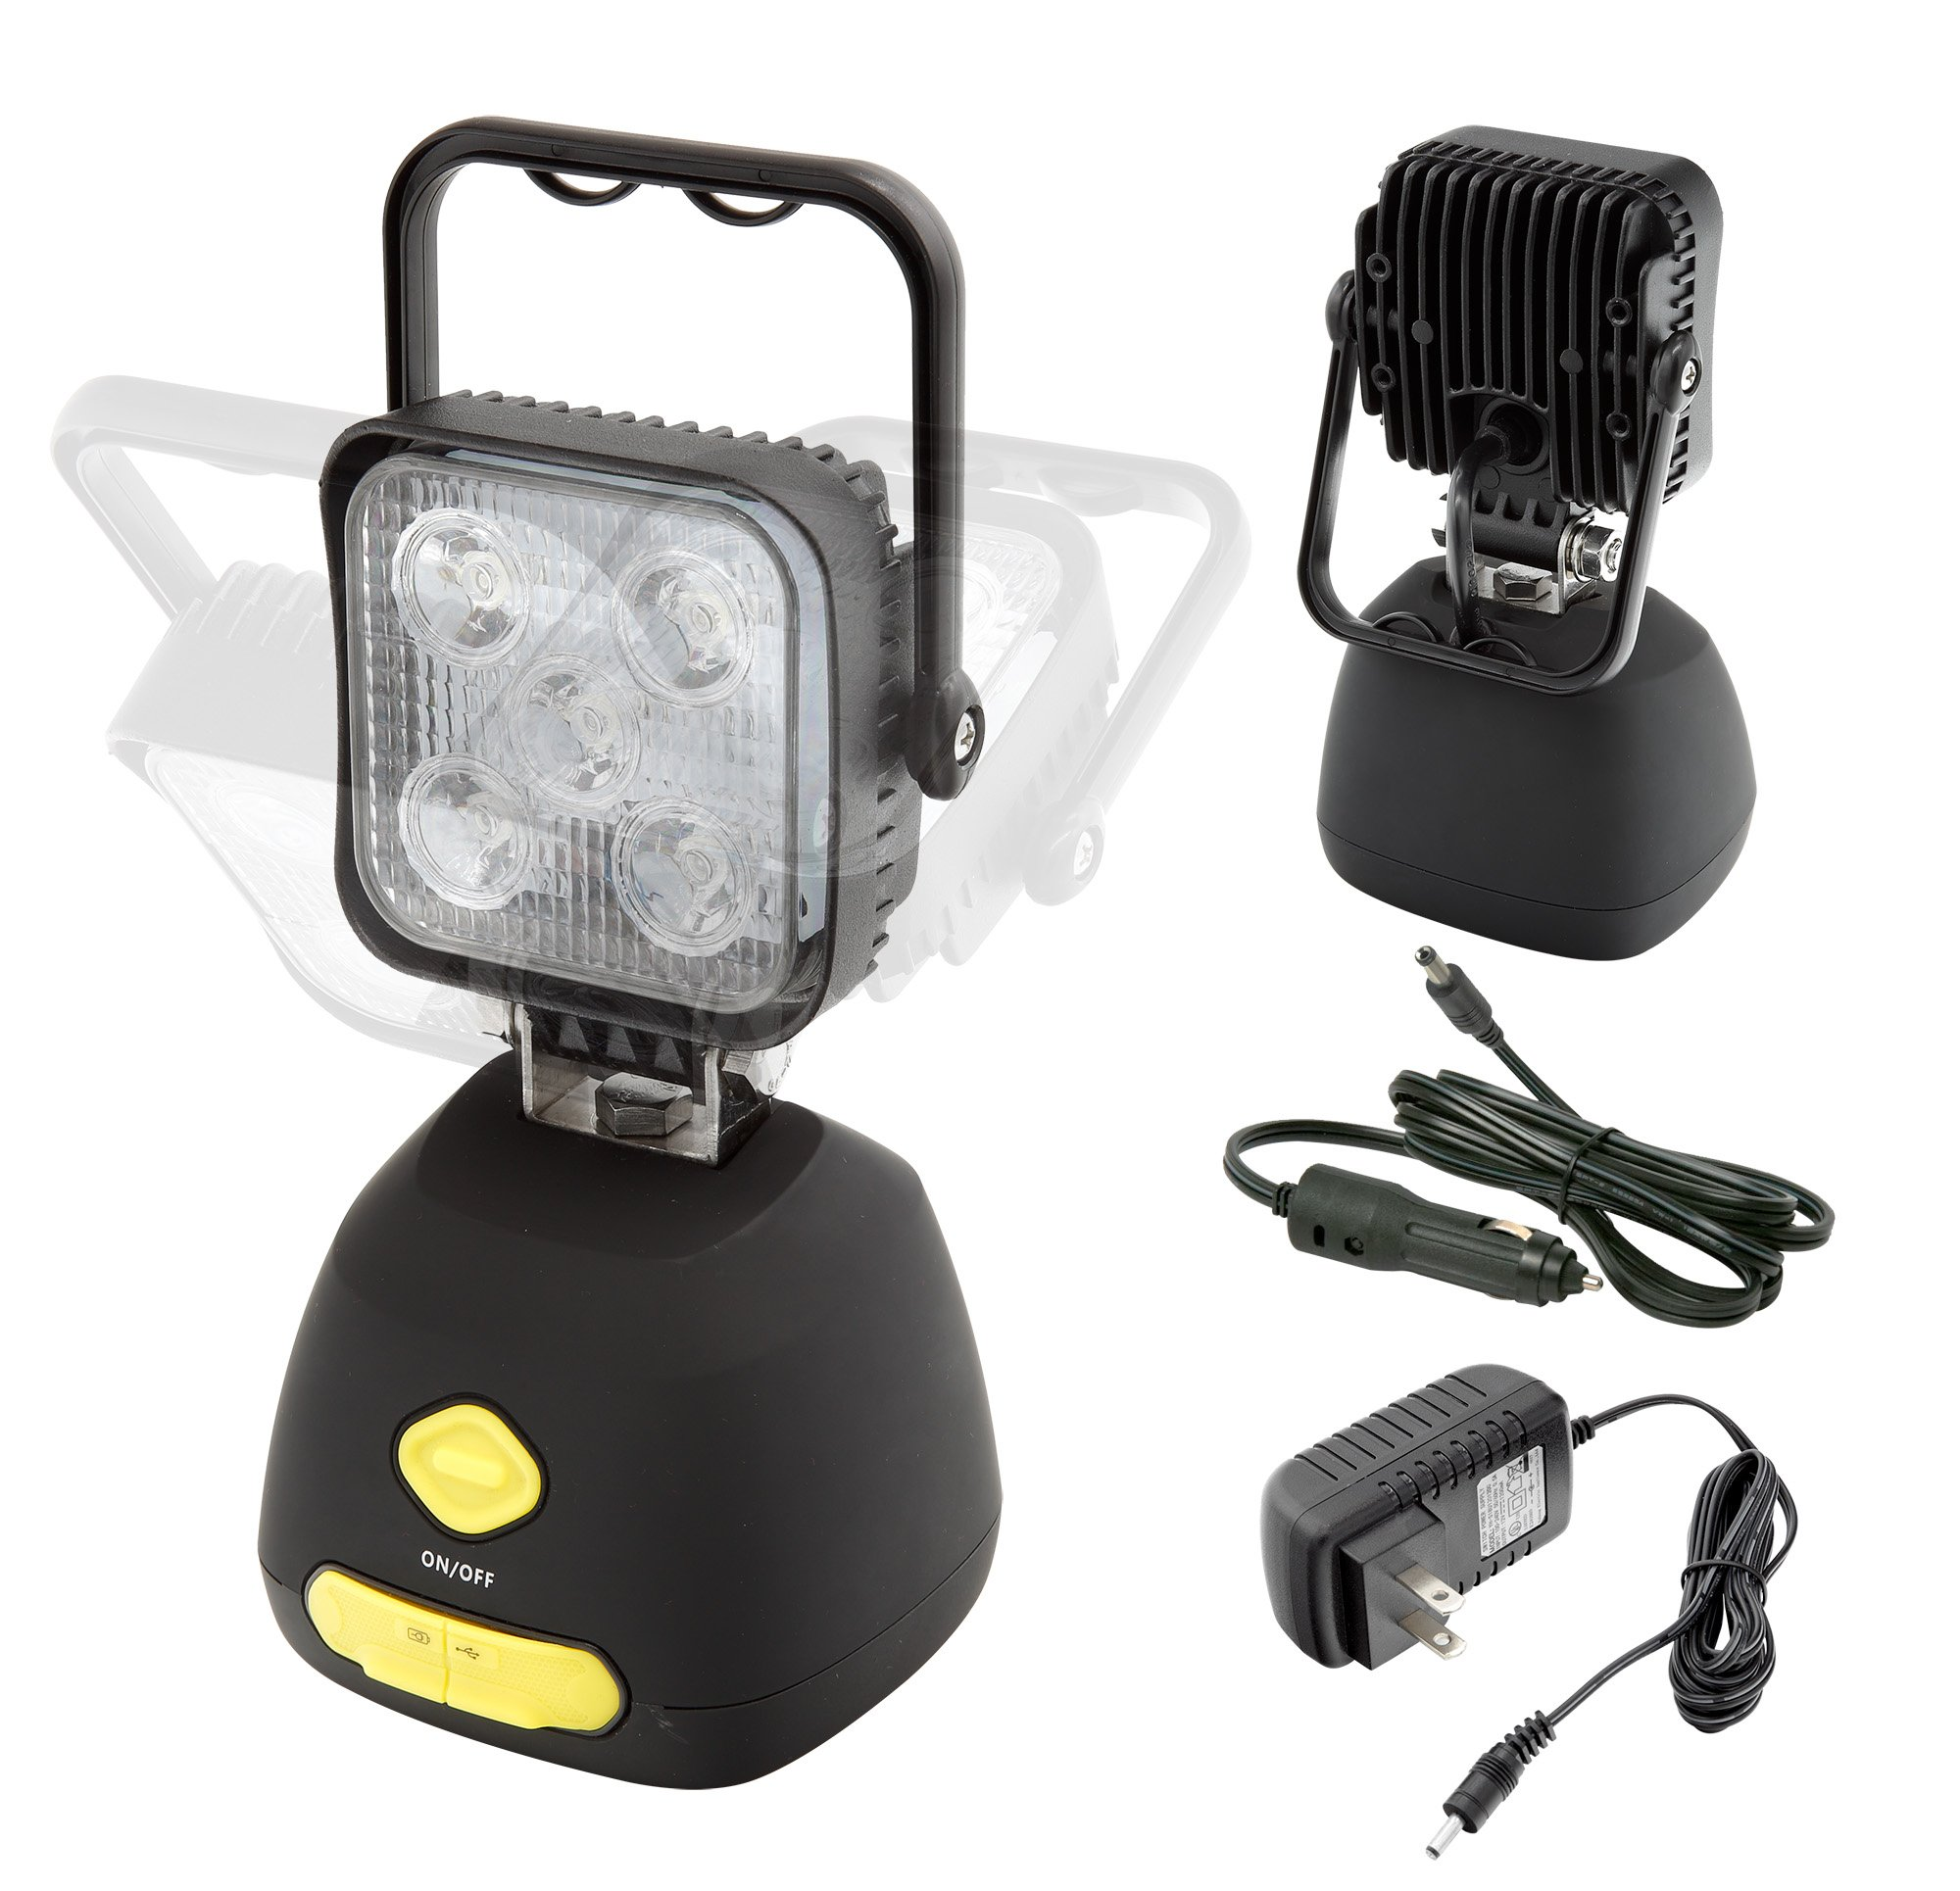 Rechargeable Heavy Duty Super Bright 1000 lumens Multi-Purpose Work Light Camping Lantern IP65 Strong Magnet, Comes with AC & DC Chargers